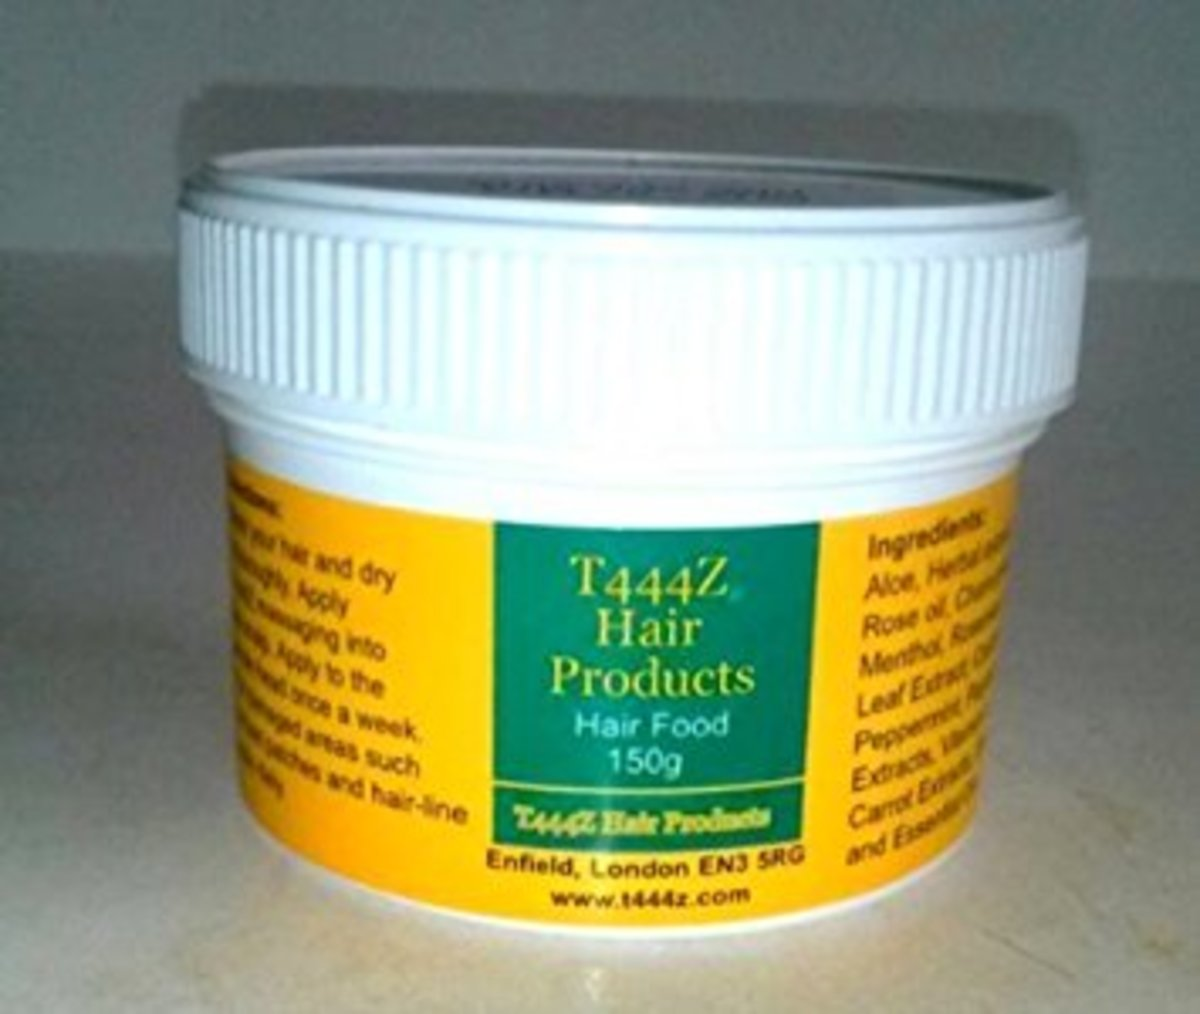 t444z-hair-food-review-does-it-really-work